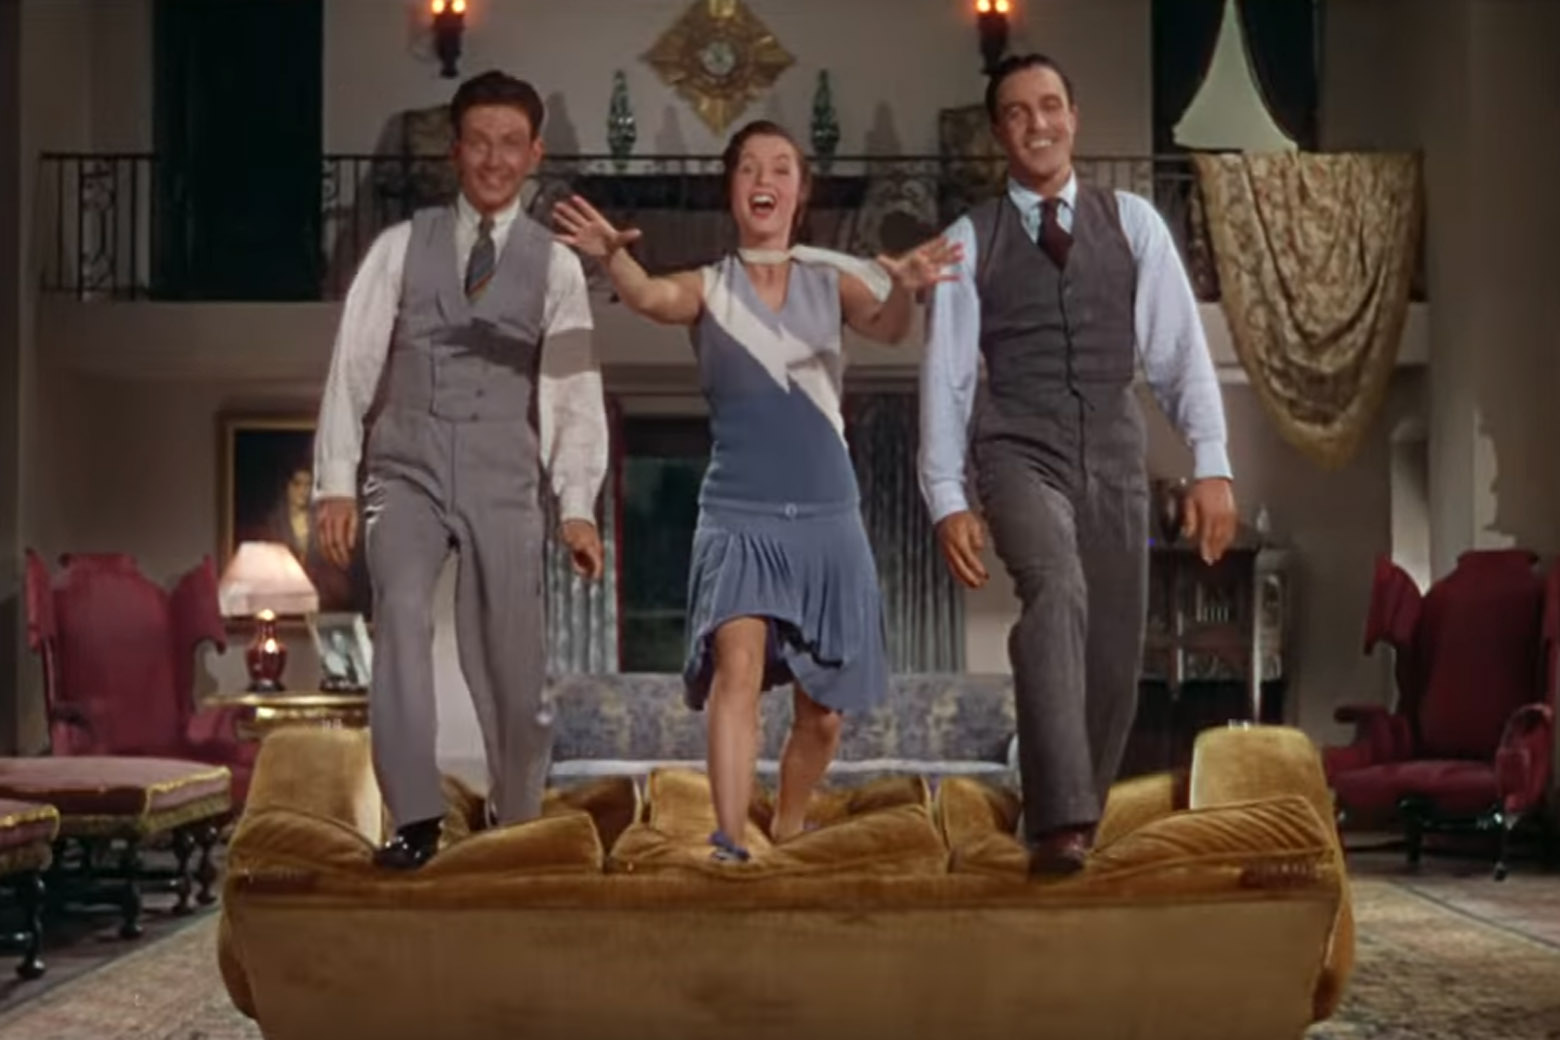 Debbie Reynolds, 'Singin' in the Rain' return to movie theaters | WTOP